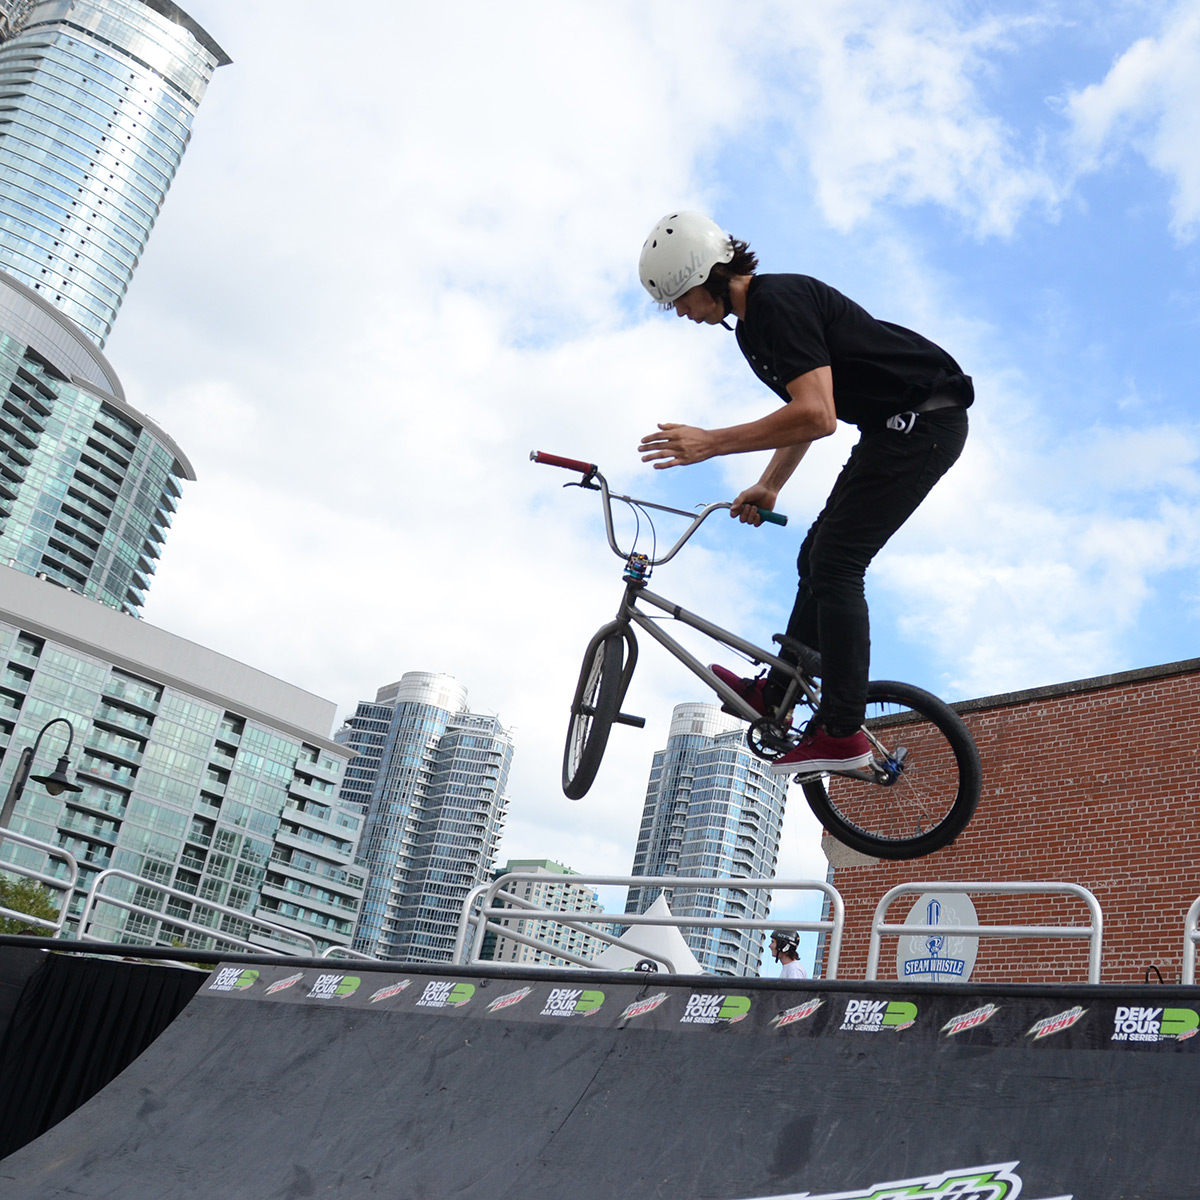 Joel Bondu 540 bar to footjam to bar in at BMX Dew Tour Am Series in Toronto